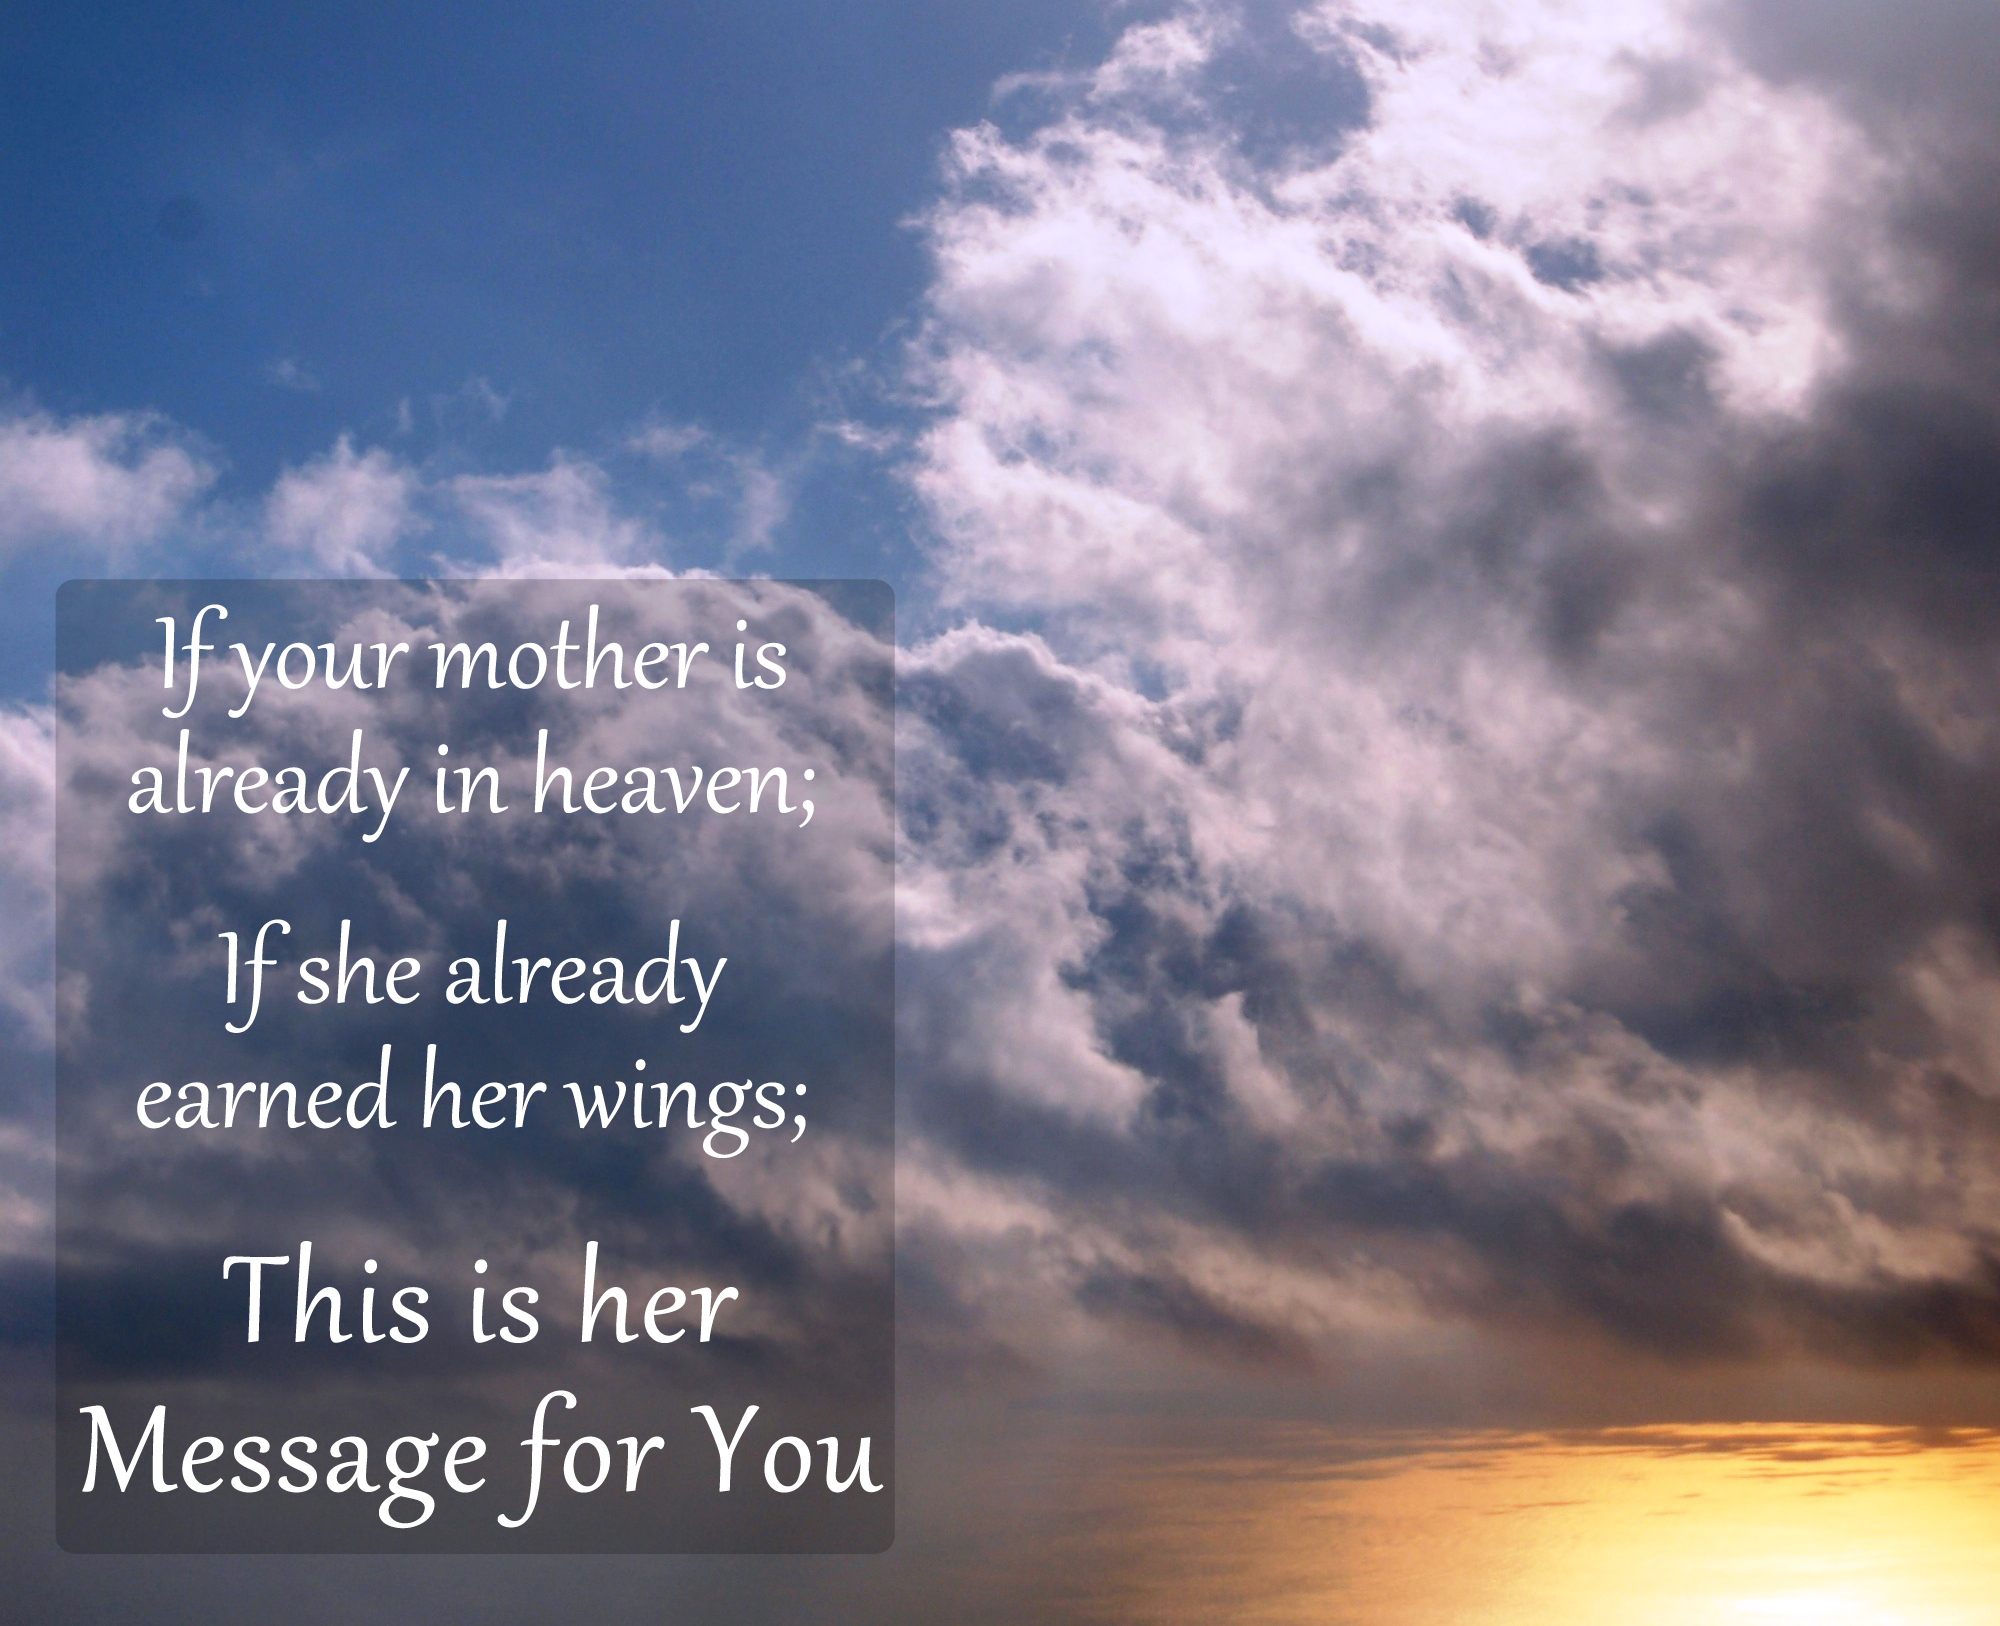 Missing My Mom In Heaven Quotes Pleasing John Msimmons Your Mother's Day Message From Your Angel Mom In